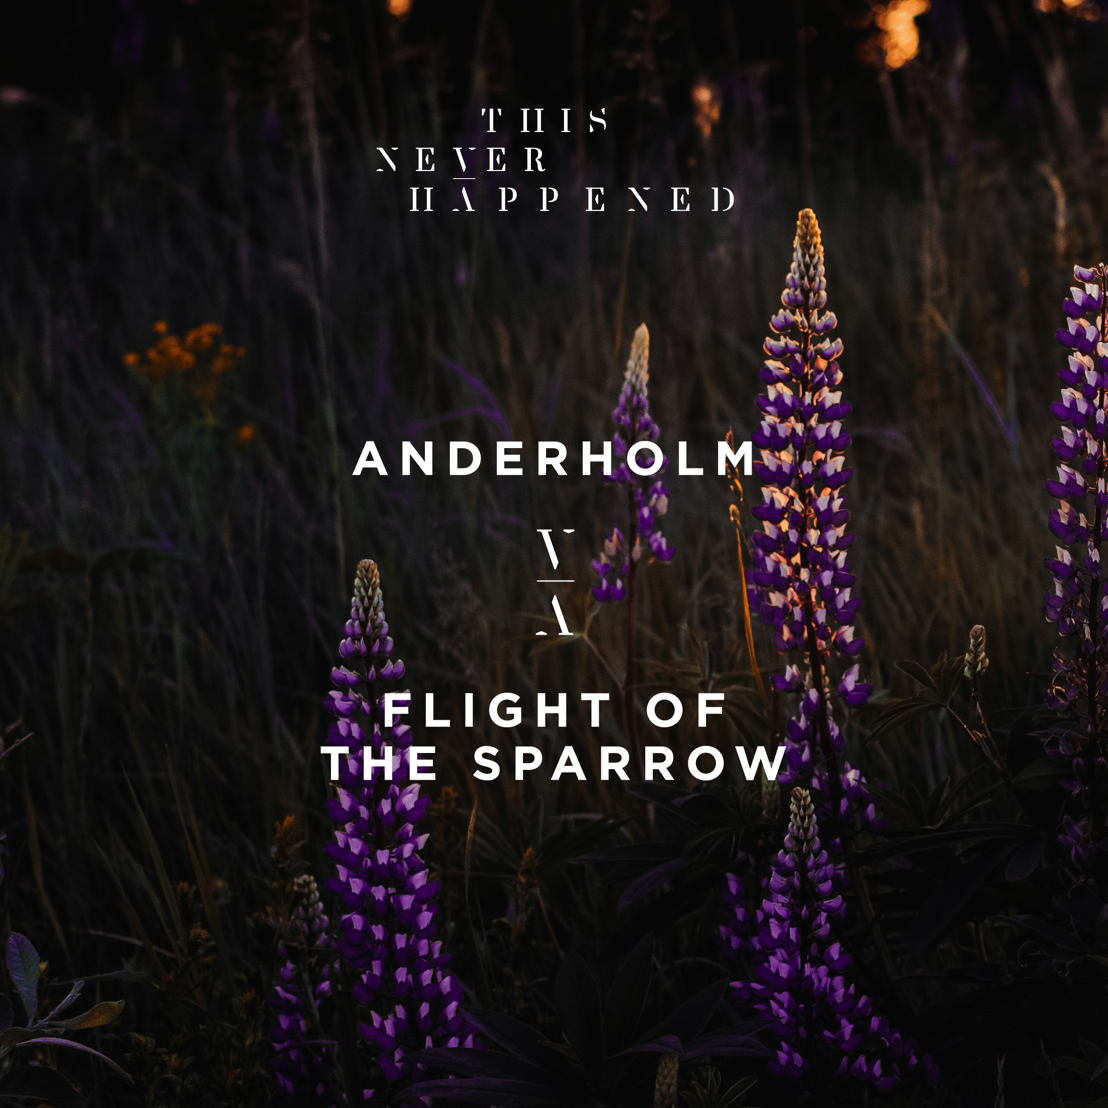 Lane 8 Signee, Anderholm, Releases Mini-Album 'Flight Of The Sparrow'